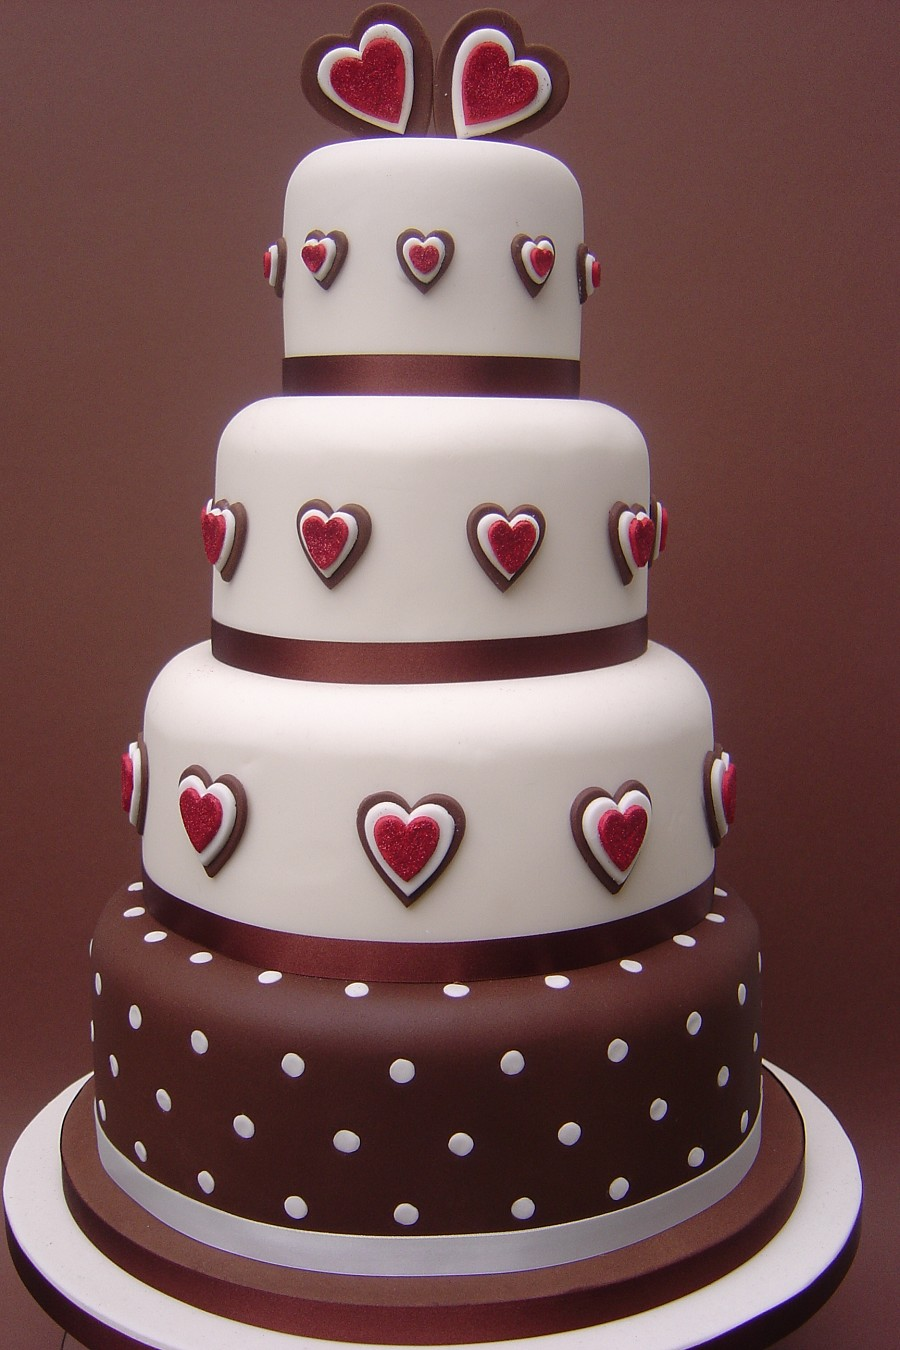 Cake Designs And Pictures : Wedding cake Ideas collection